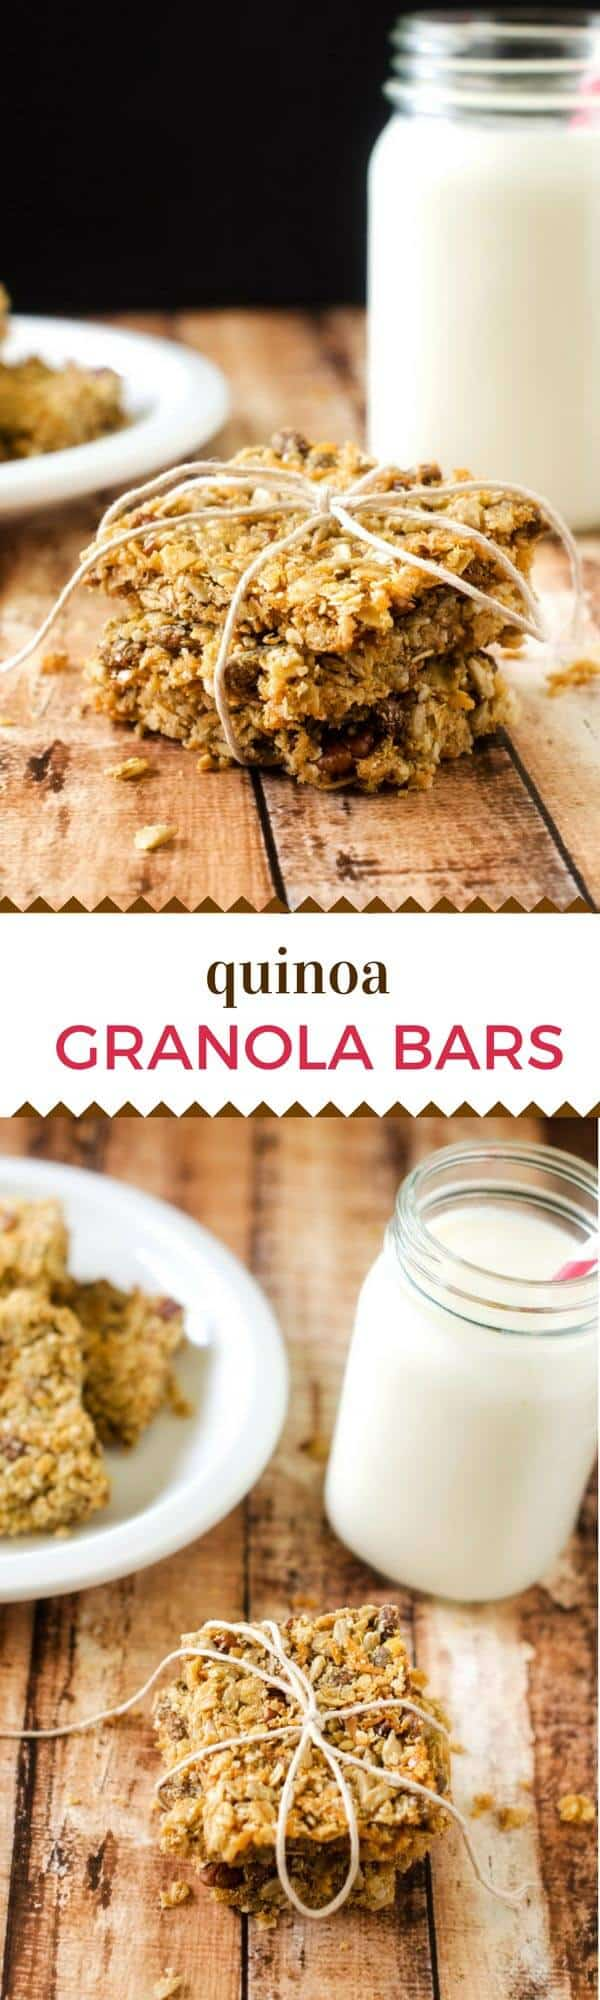 These Quinoa Granola Bars make a delicious, healthy snack that you can feel good about serving your family! #glutenfree #vegan